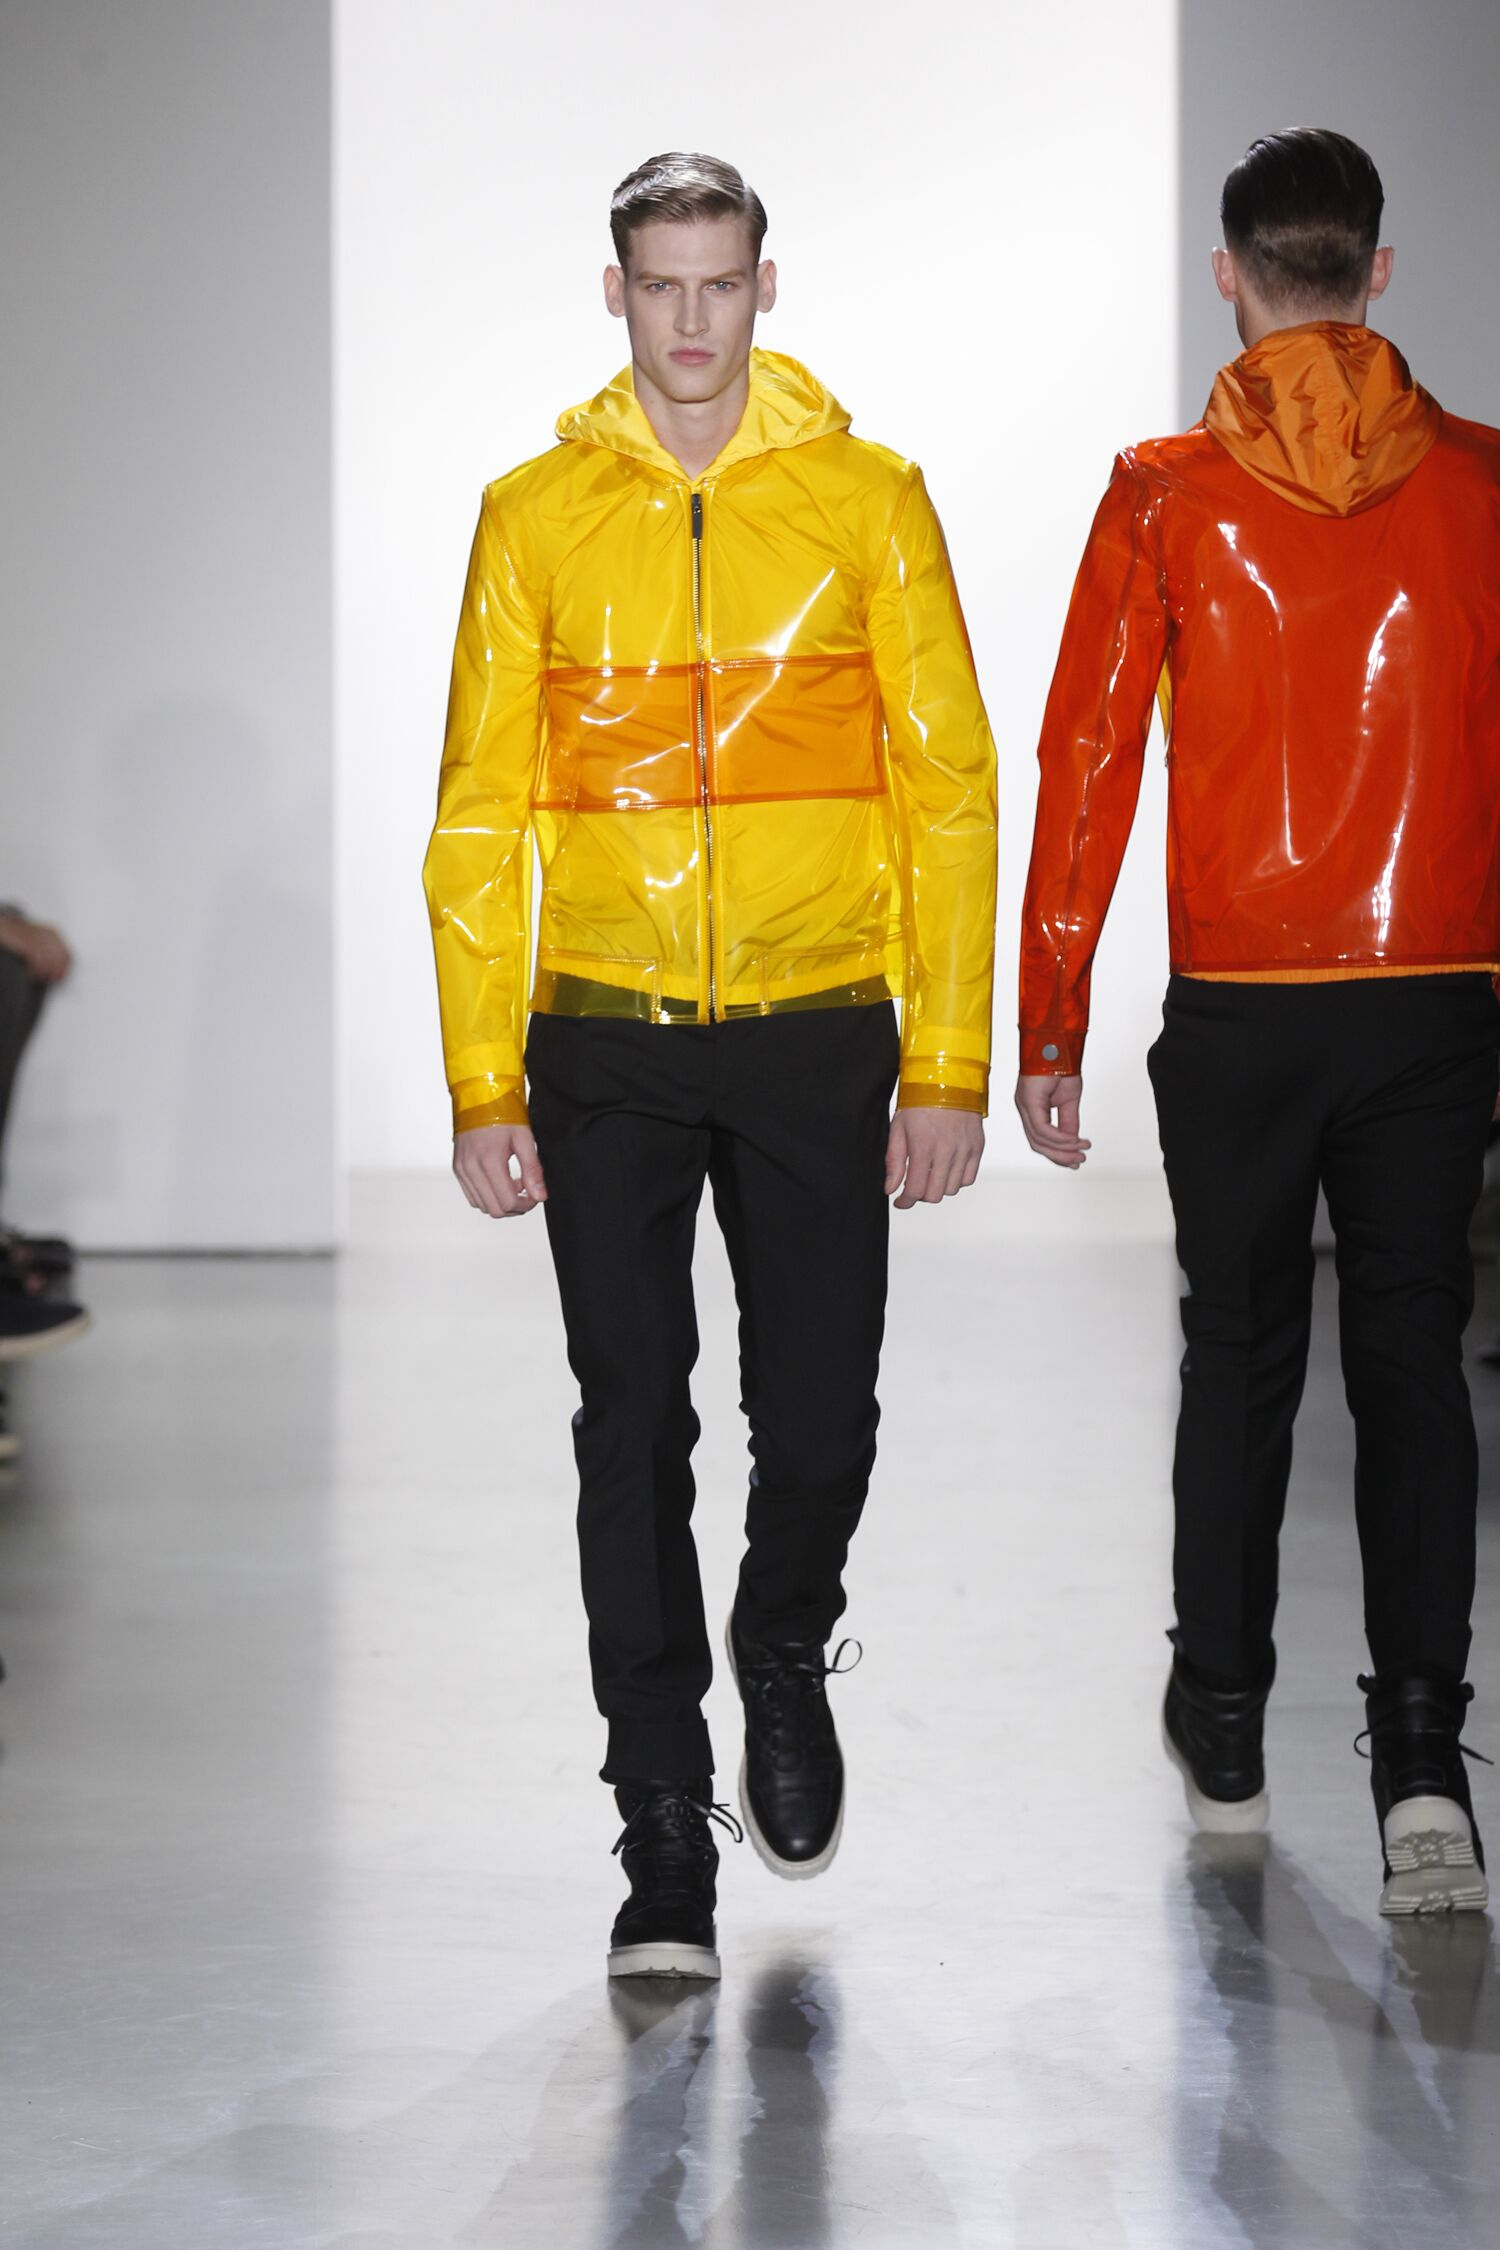 Catwalk Calvin Klein Collection Man Fashion Show Spring 2015